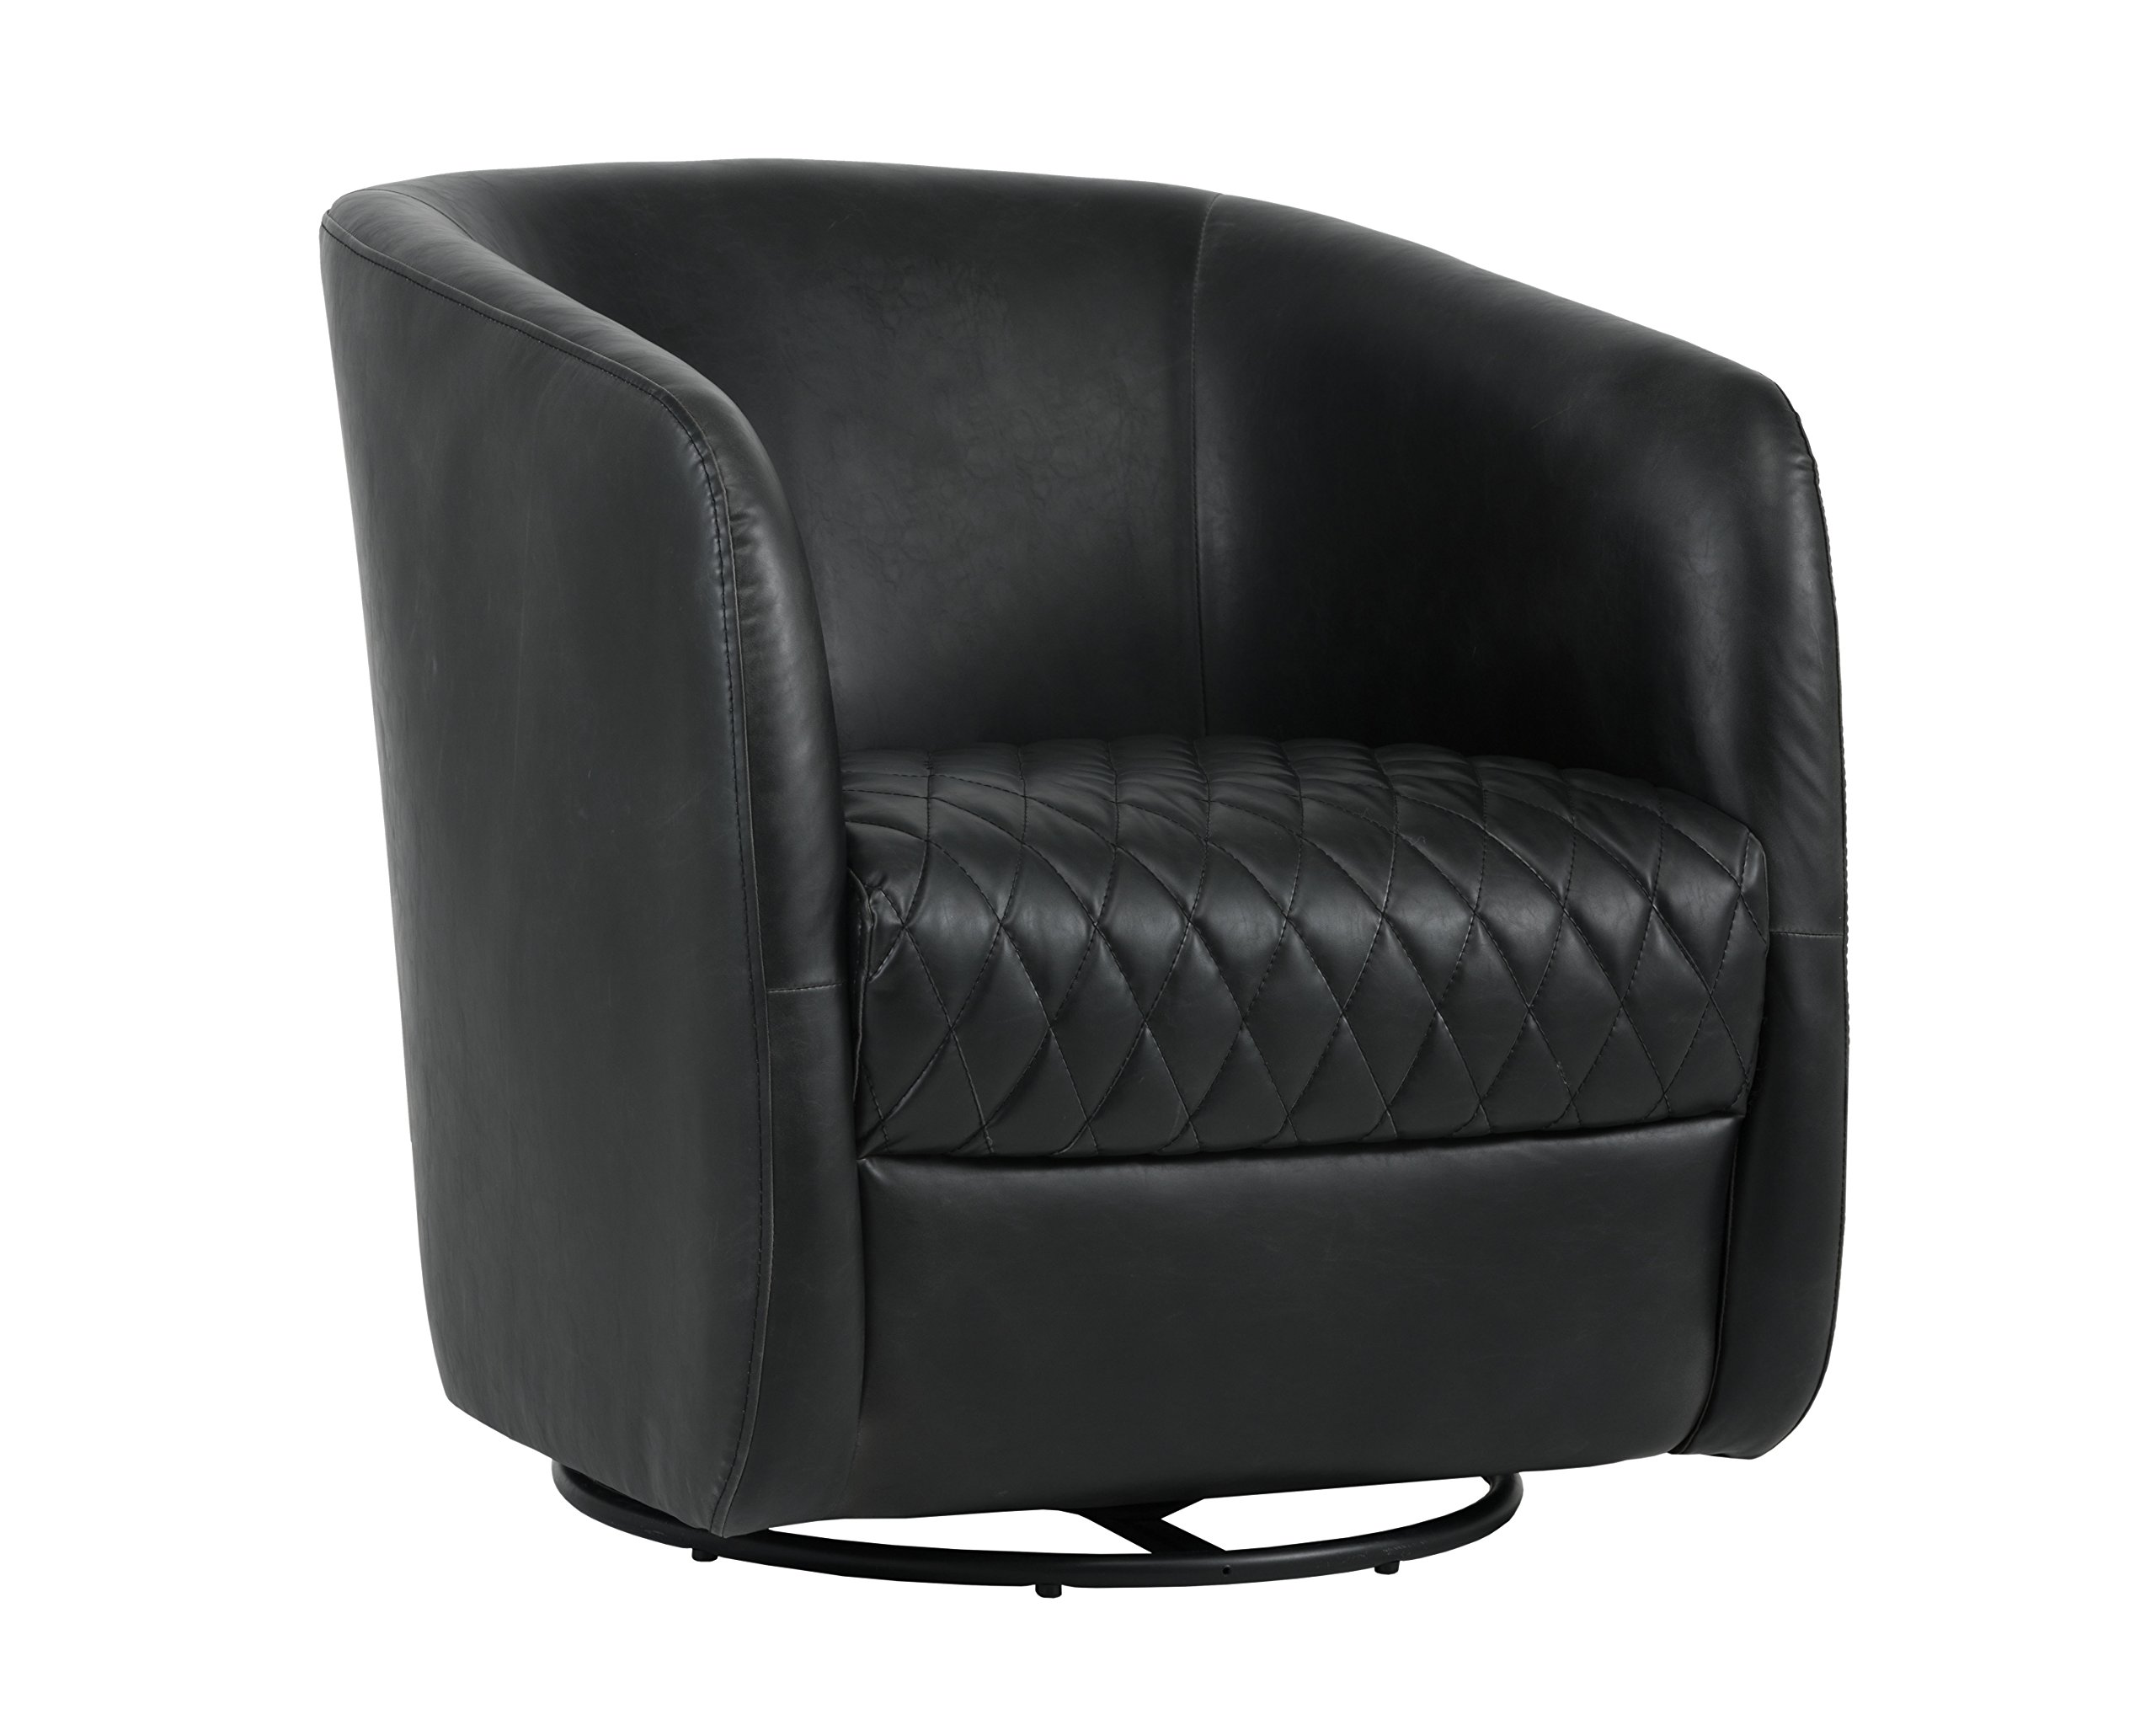 Sunpan Modern Dax Swivel Chair, Black by Sunpan Modern